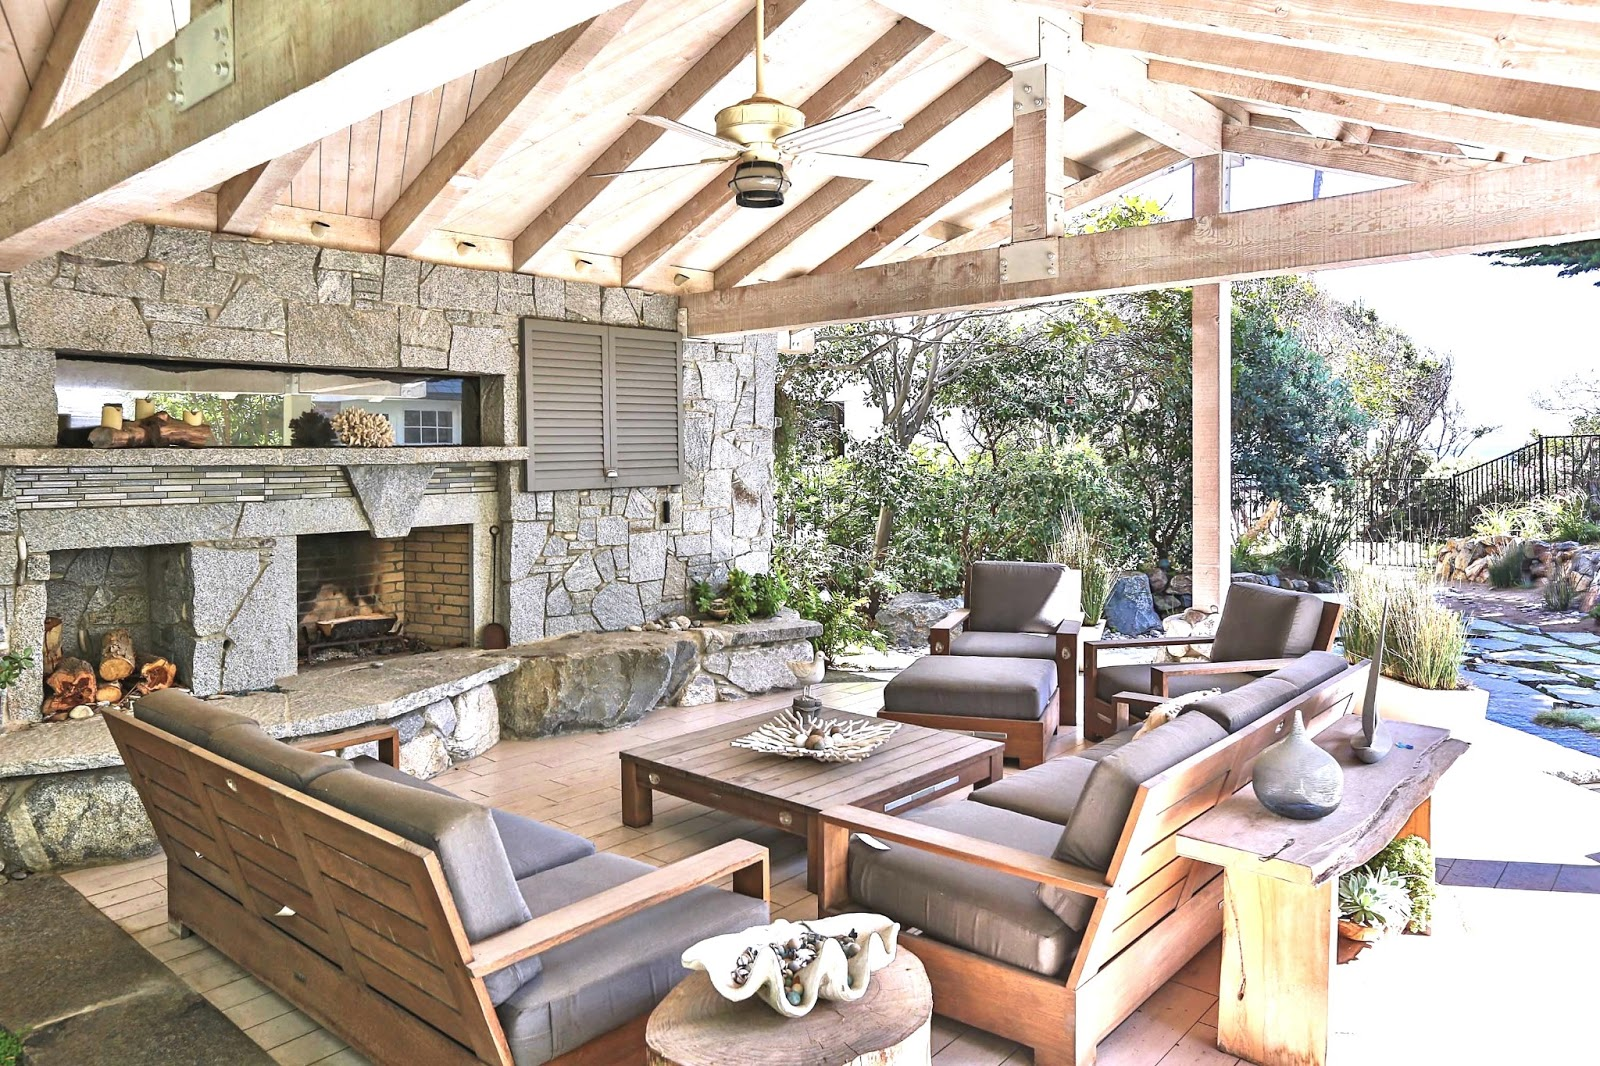 outdoor covered patio with fireplace $24 MILLION DOLLAR MALIBU ESTATE - SEE THIS HOUSE